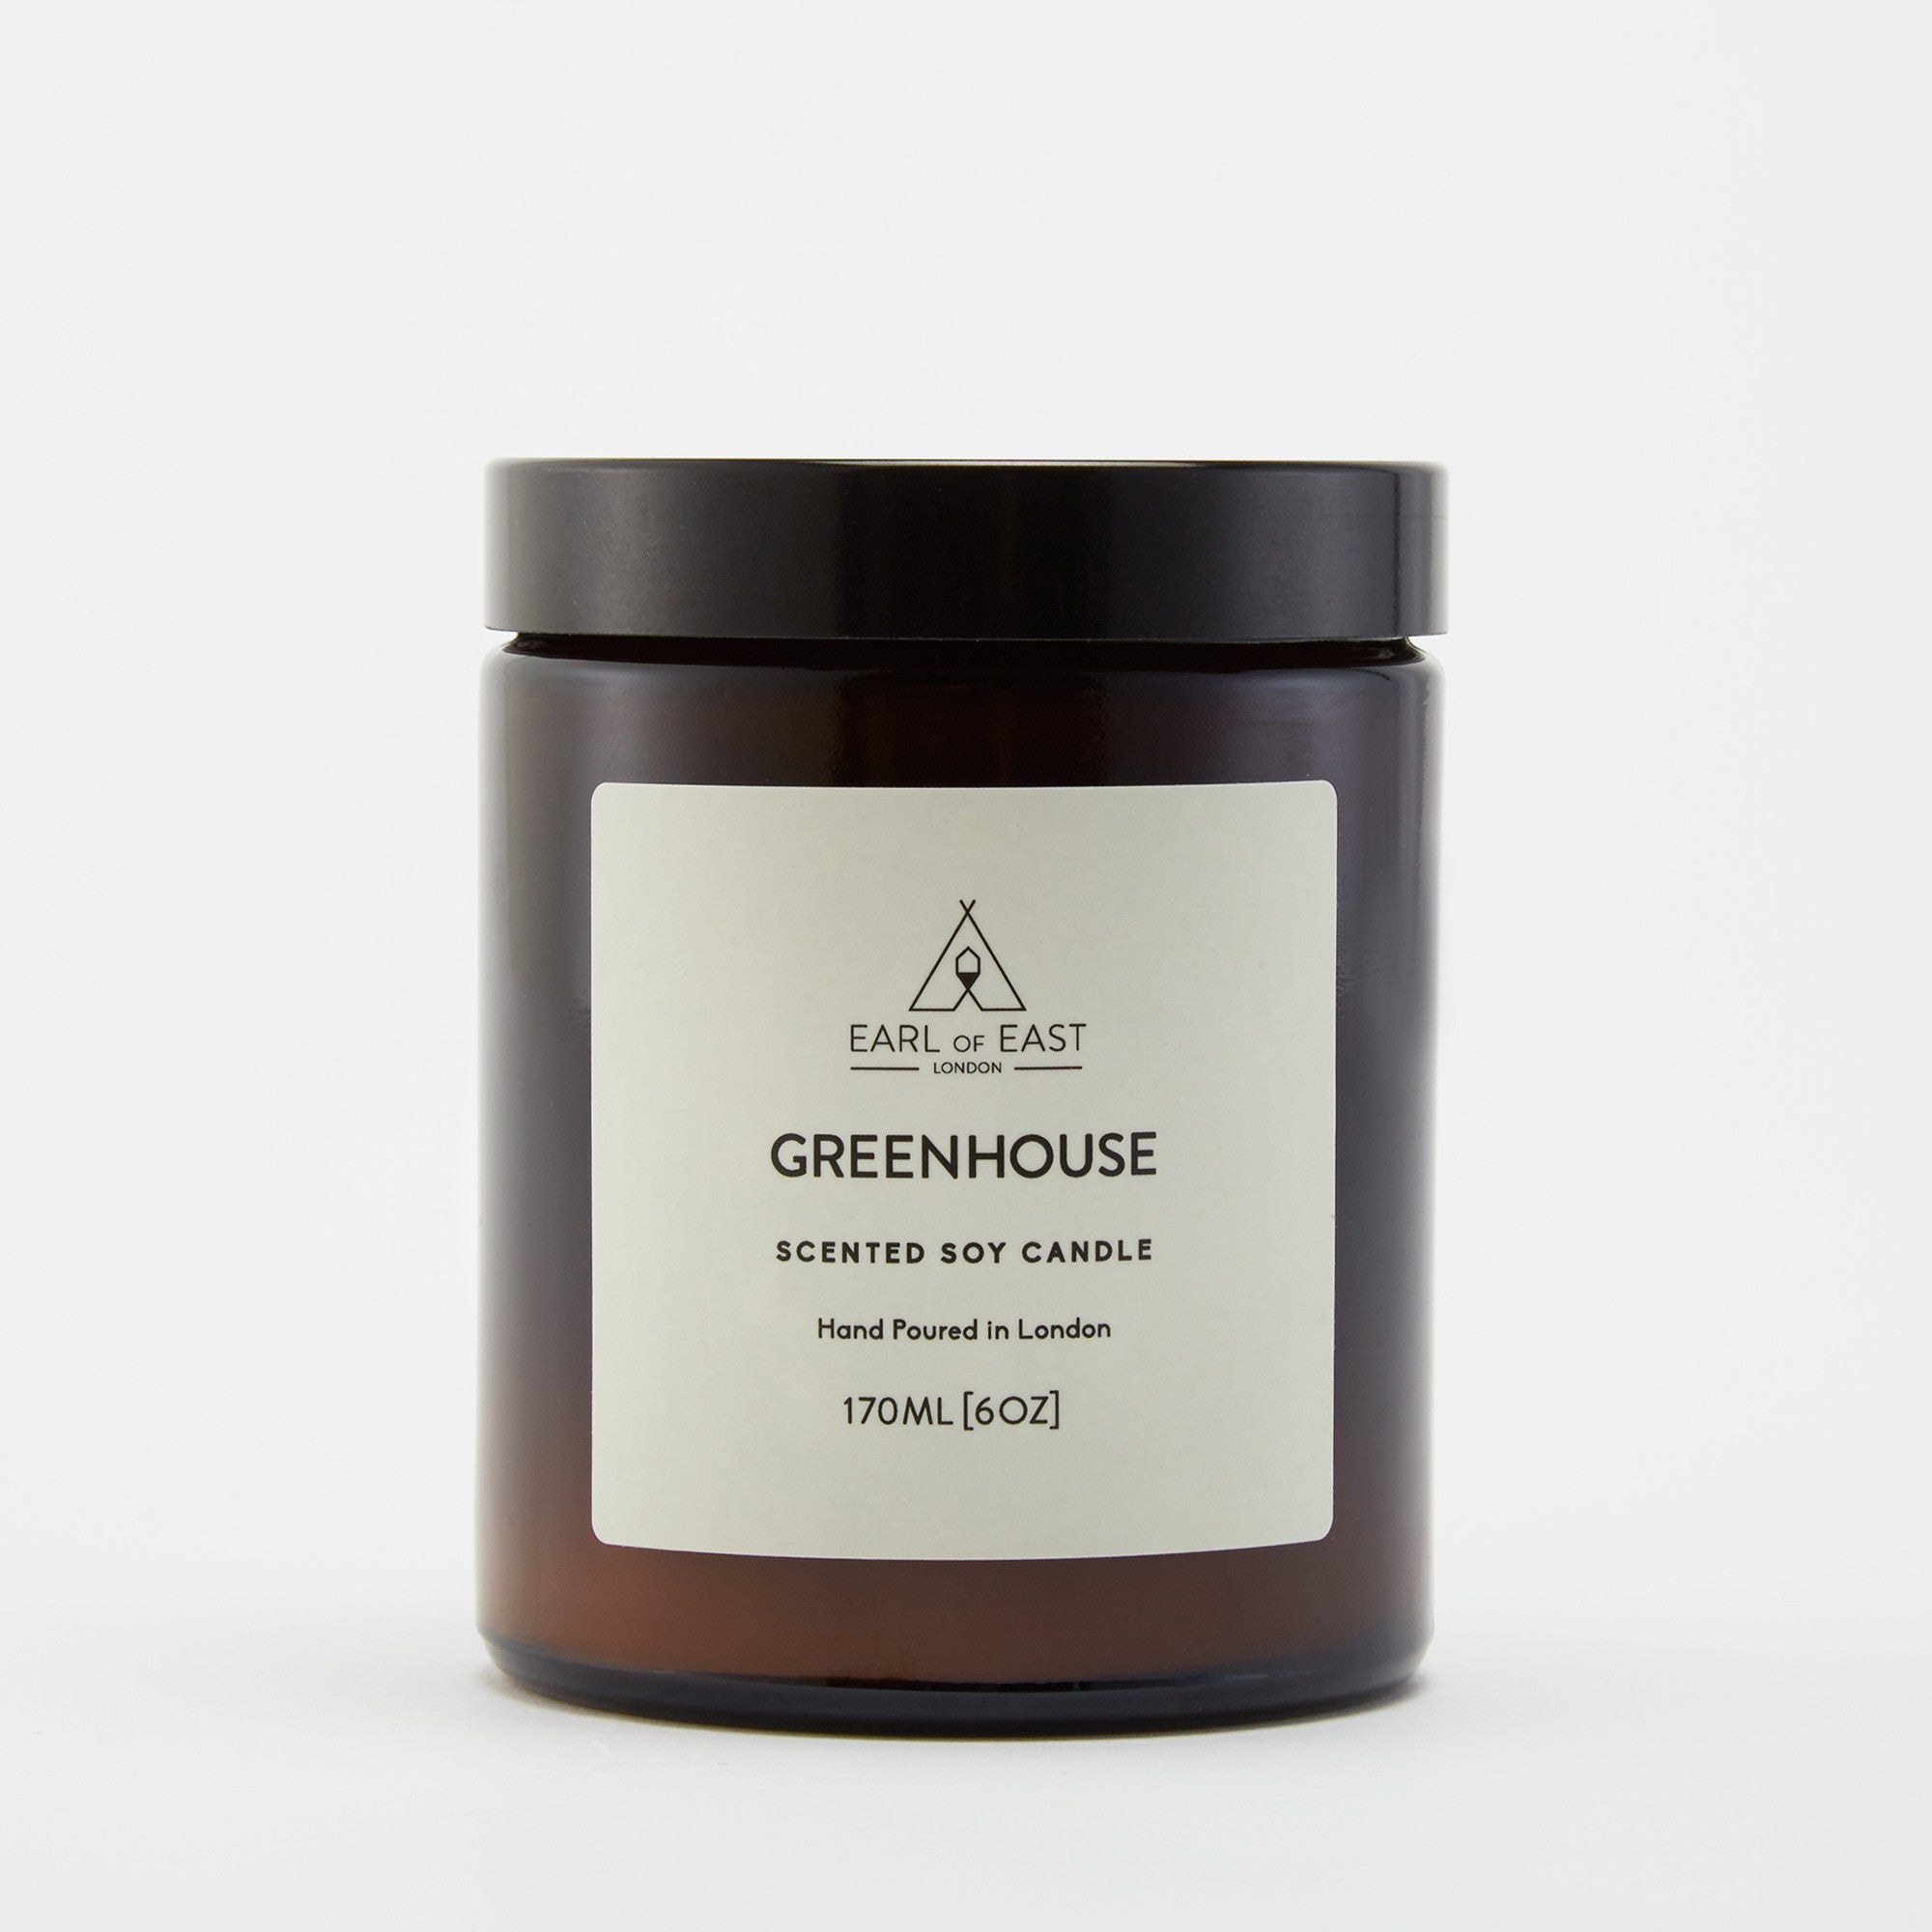 Greenhouse Soy Candle